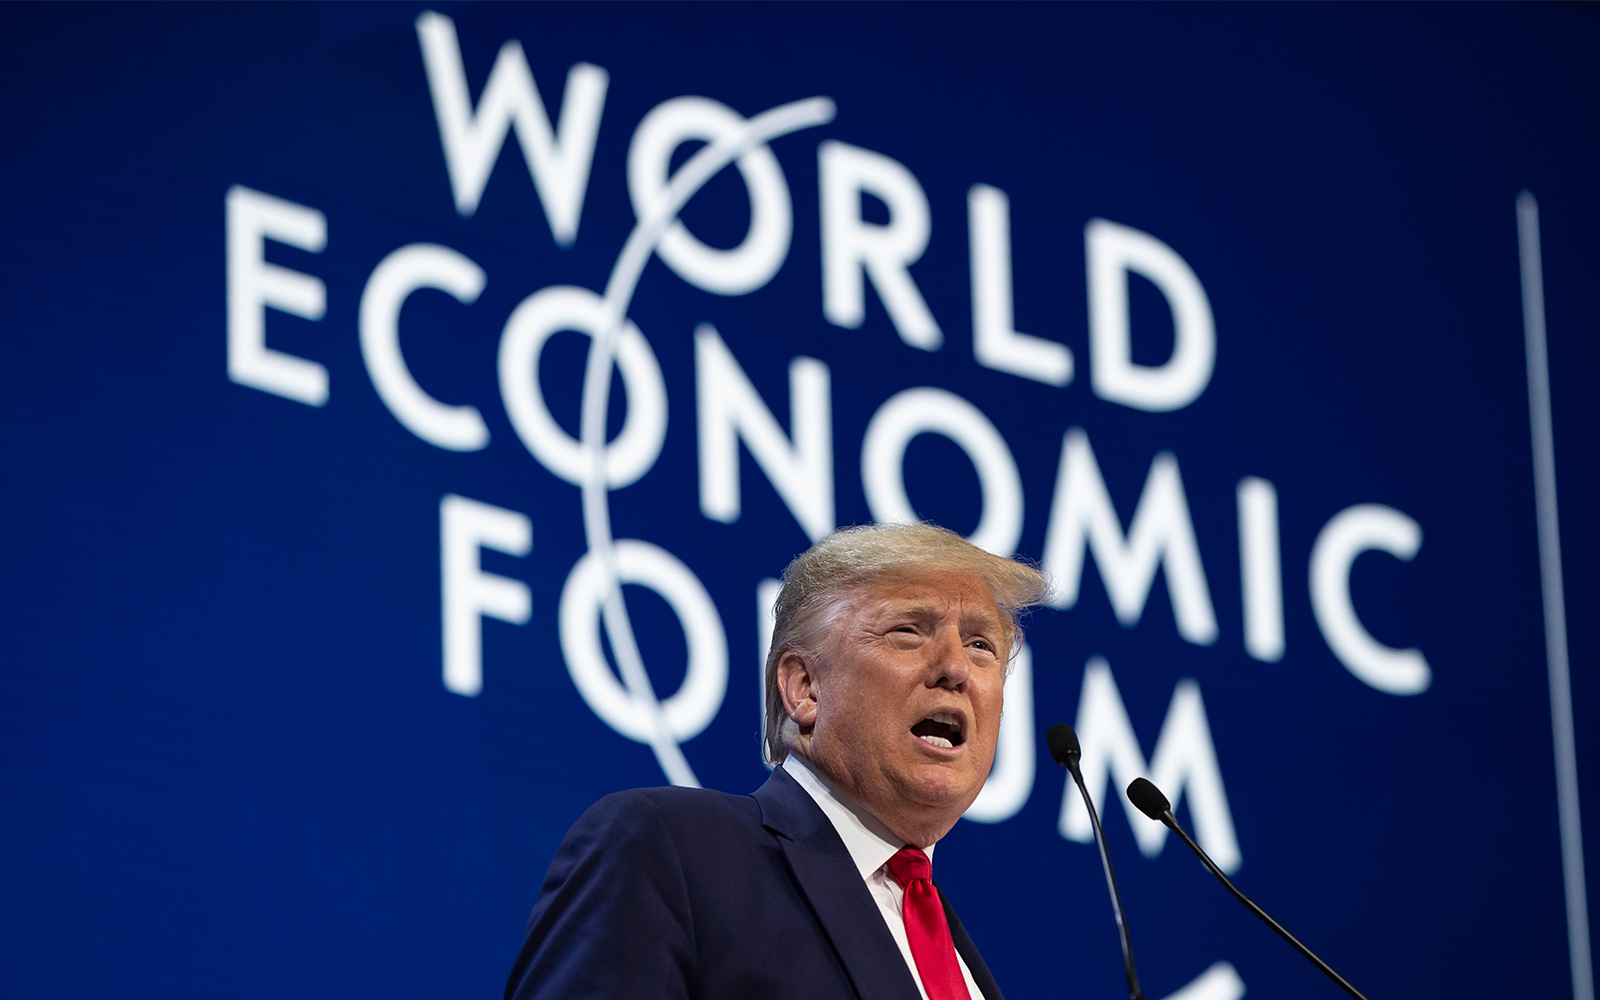 US President Donald Trump delivers the opening remarks at the World Economic Forum